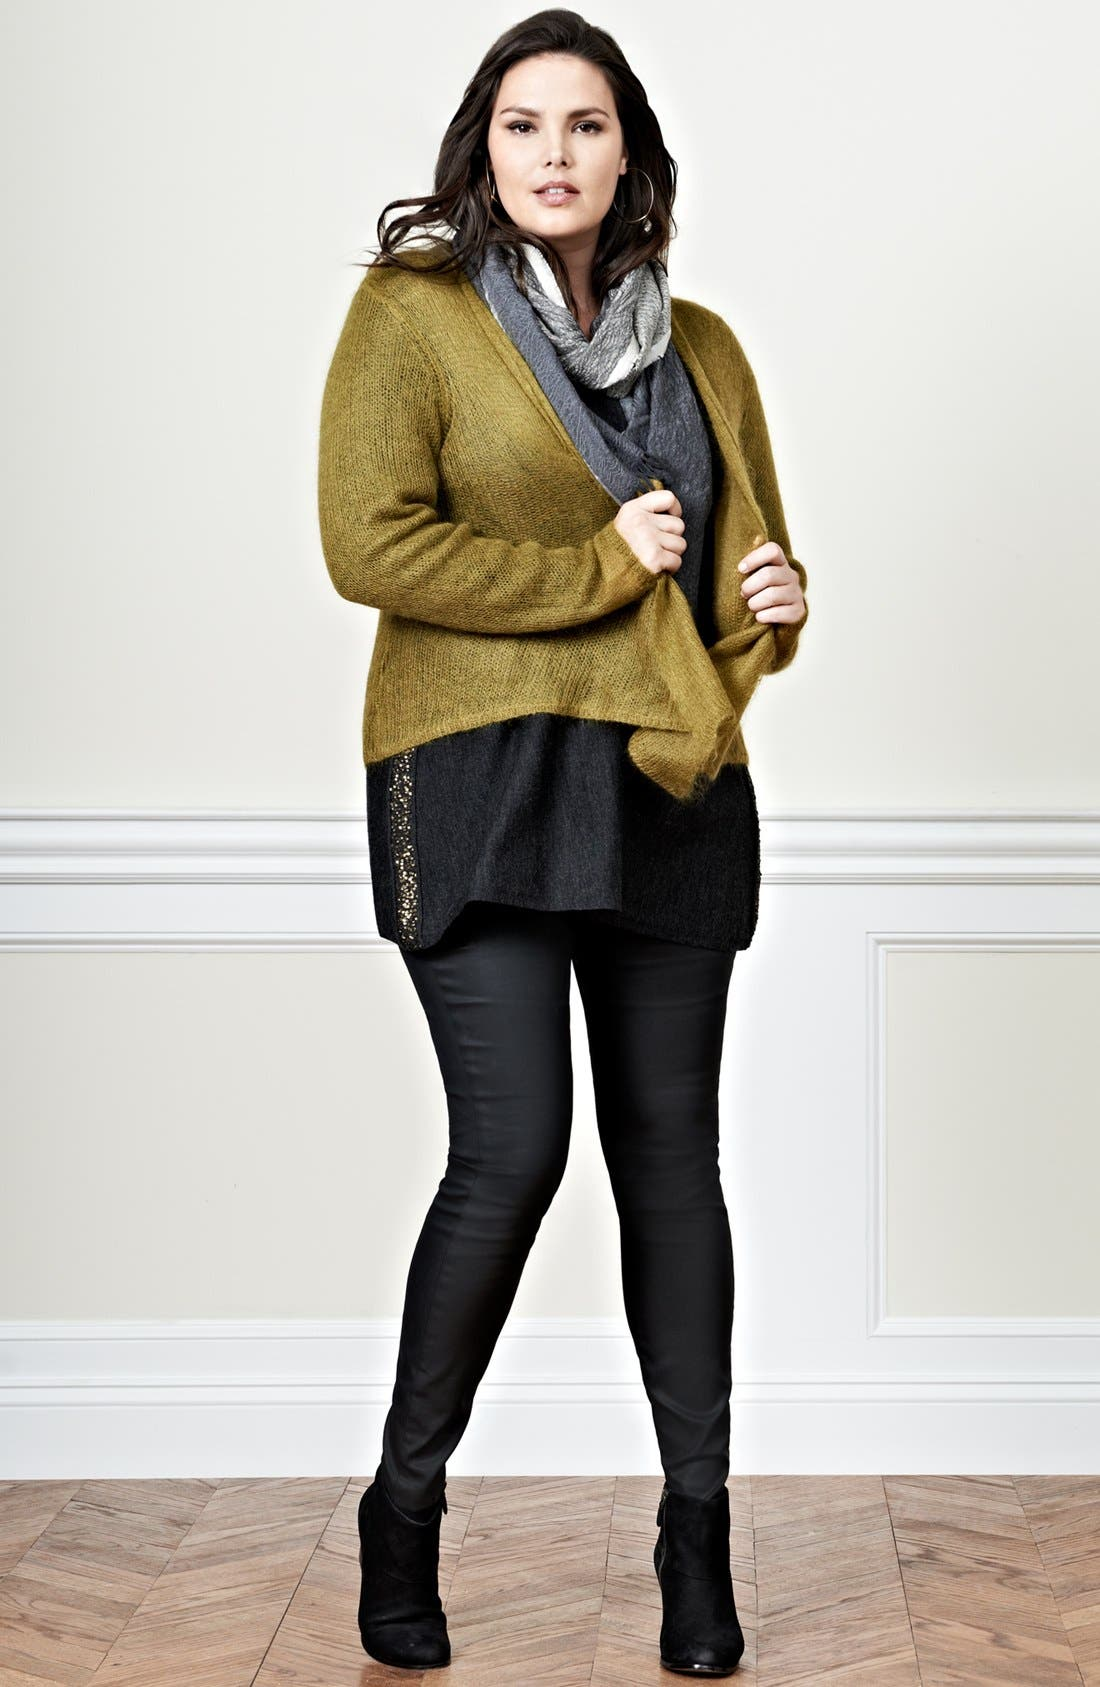 Alternate Image 1 Selected - Eileen Fisher Cardigan, Sweater & Jeans